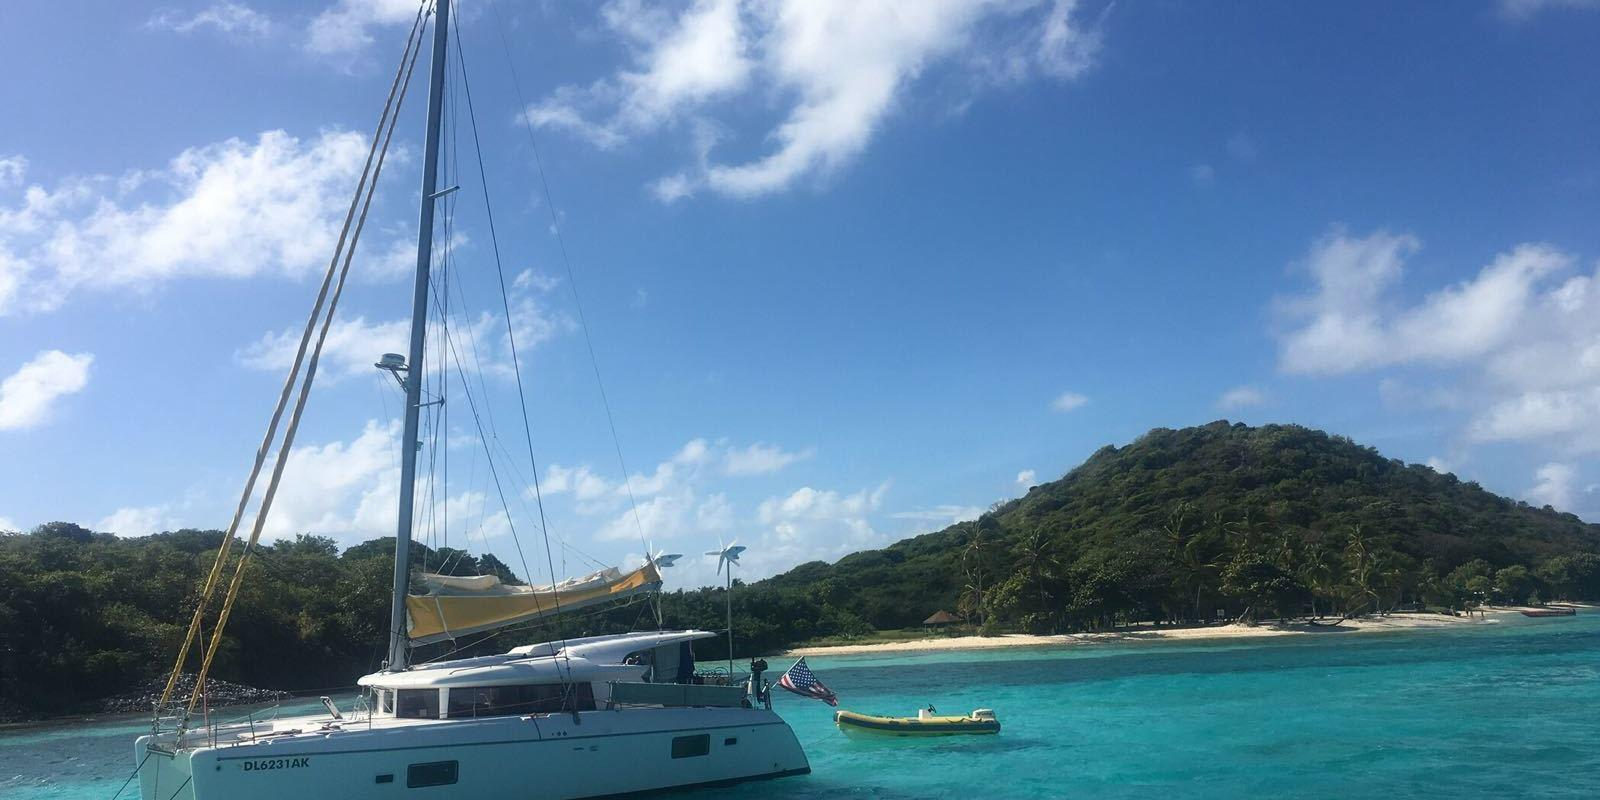 From Martinique to discover the Grenadines on a luxury Catamaran with Hostess